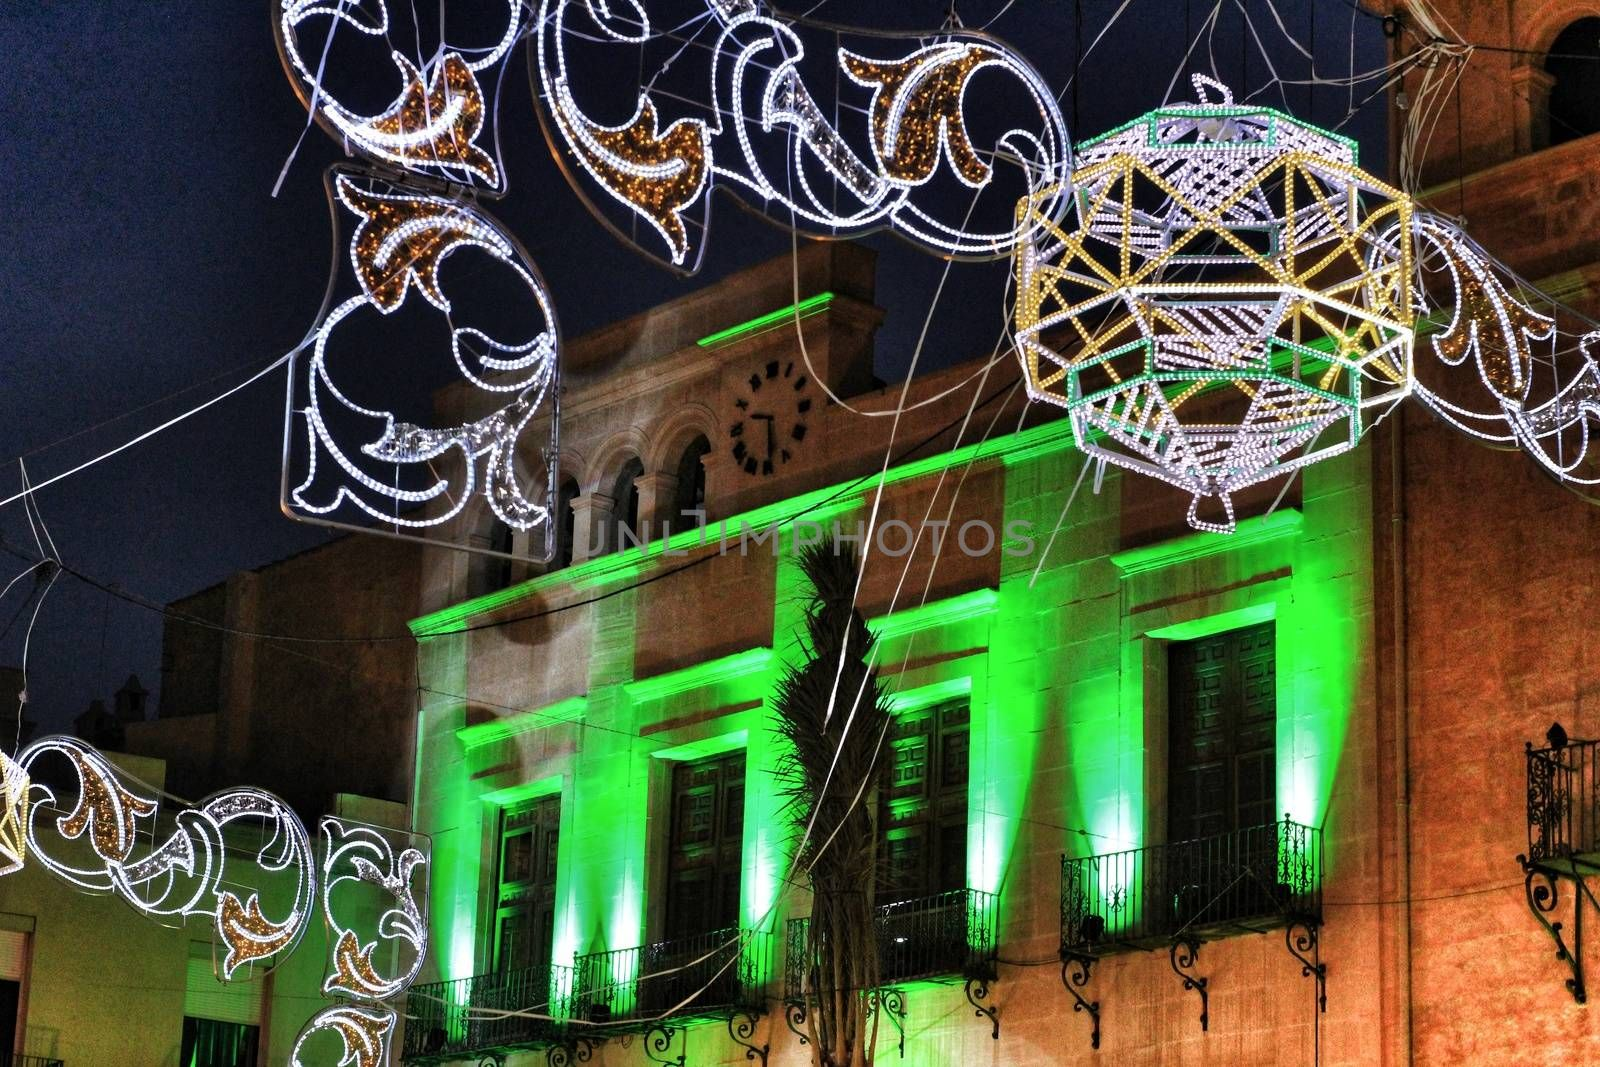 Elche, Spain- August 13, 2018: Elche town hall square decorated with colorful bulbs and garlands for the festivities